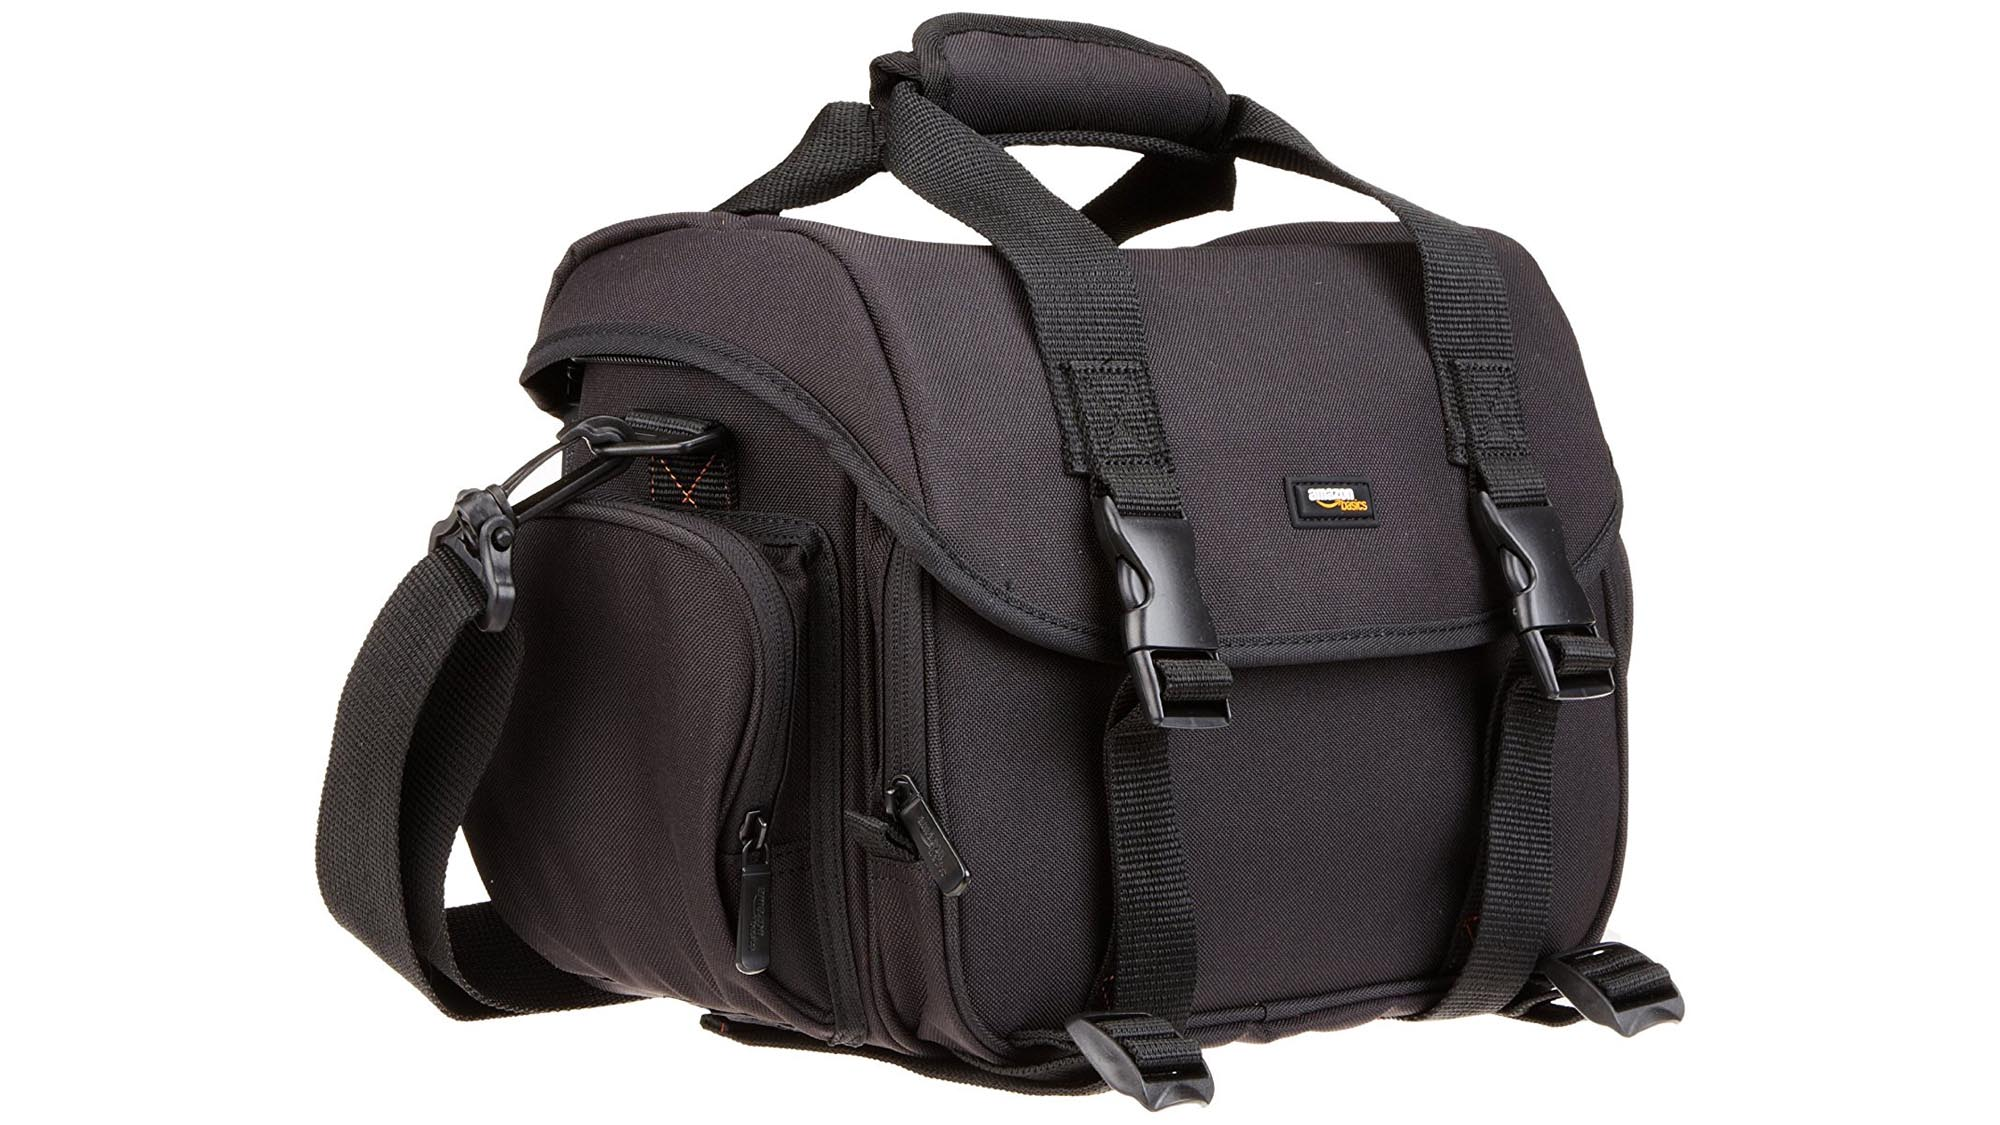 Best camera bags 2017: Keep your camera safe with the best camera ...